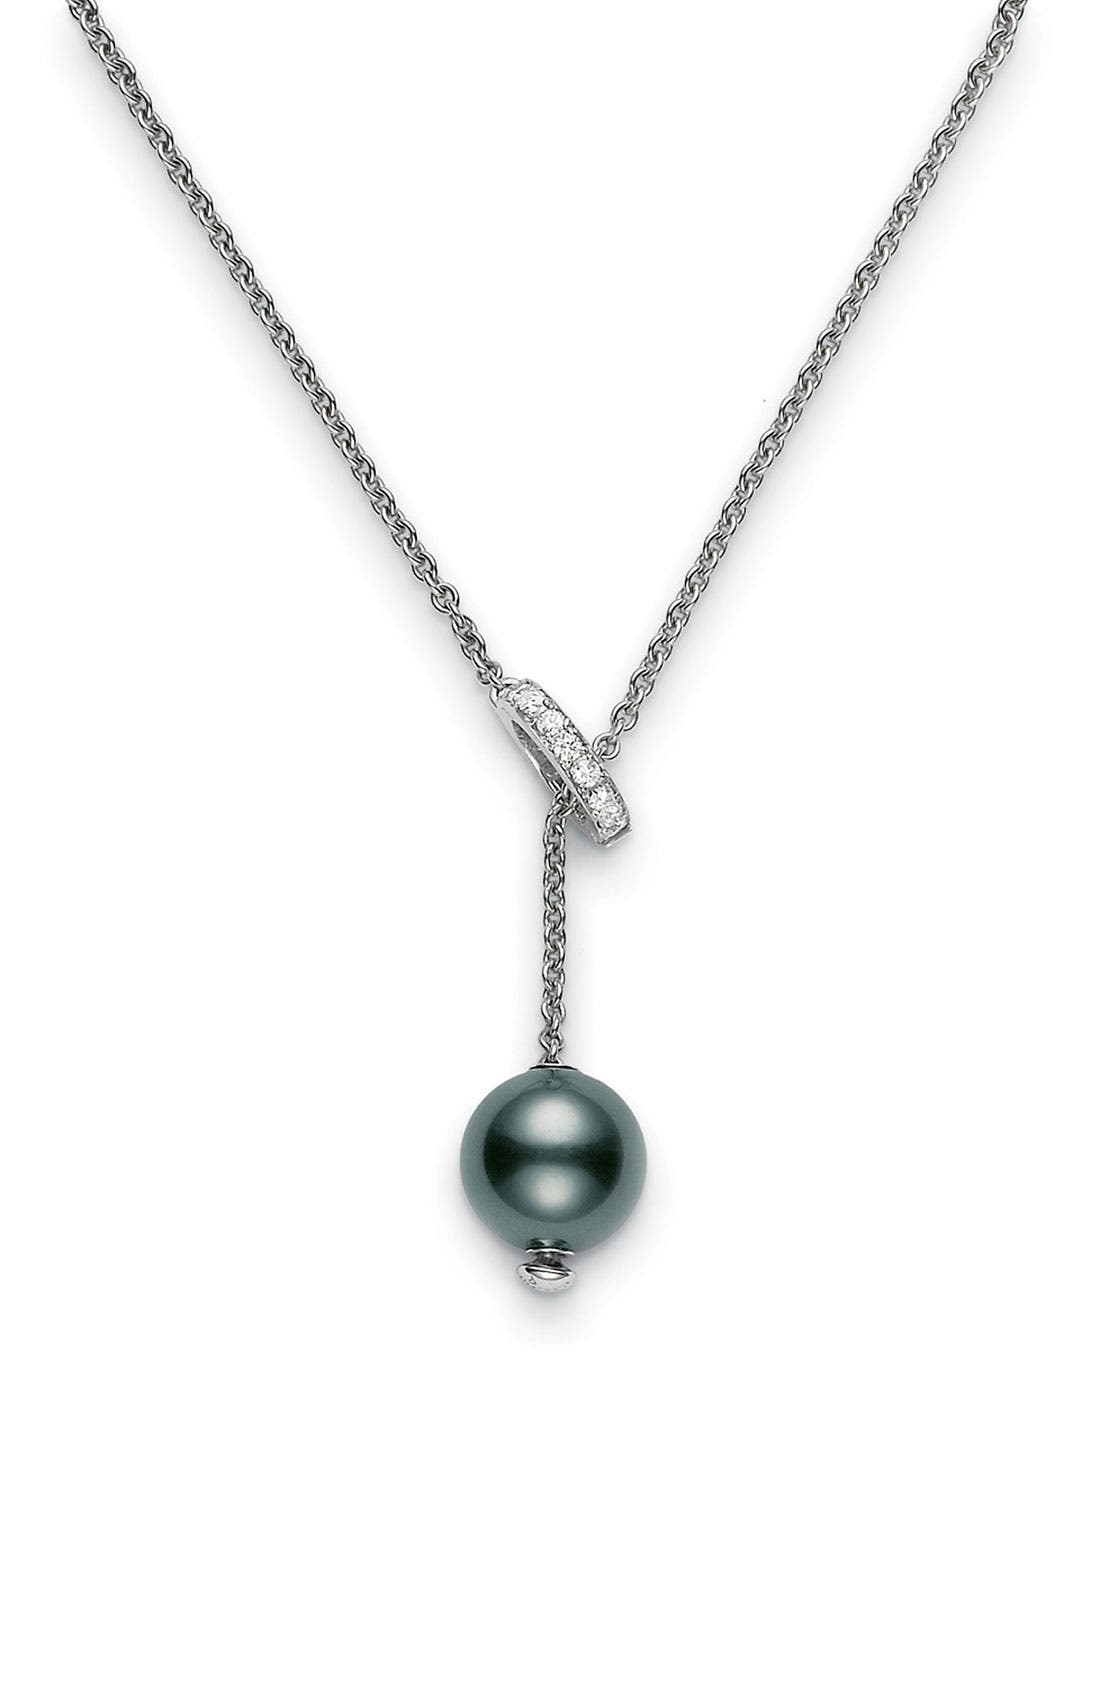 'Pearls in Motion' Black South Sea Cultured Pearl & Diamond Necklace,                             Main thumbnail 1, color,                             BLACK SOUTH SEA PEARL